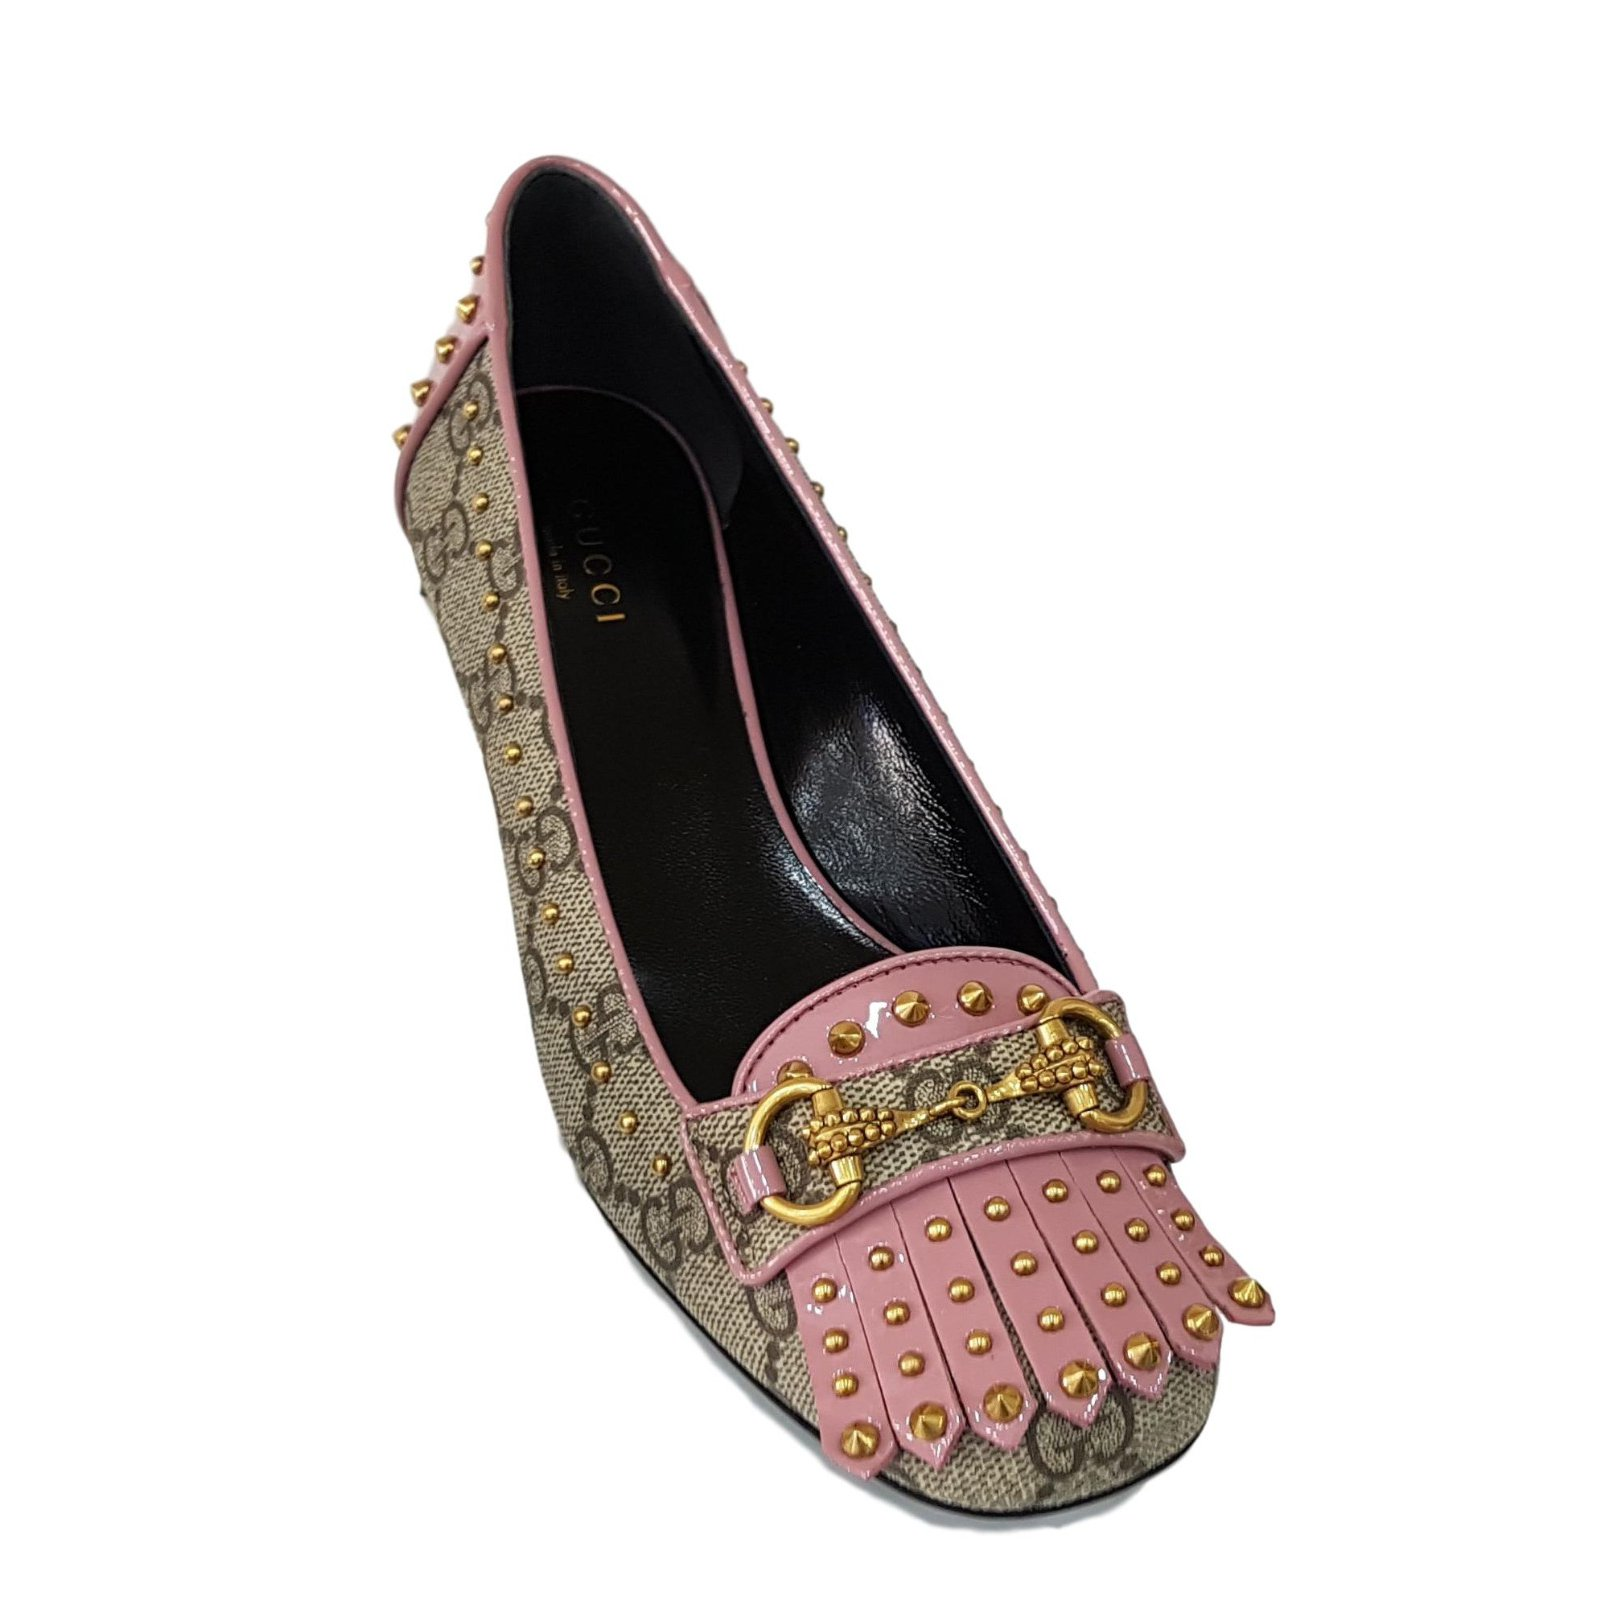 gucci gucci shoes new ballet flats other pink beige ref 52813 joli